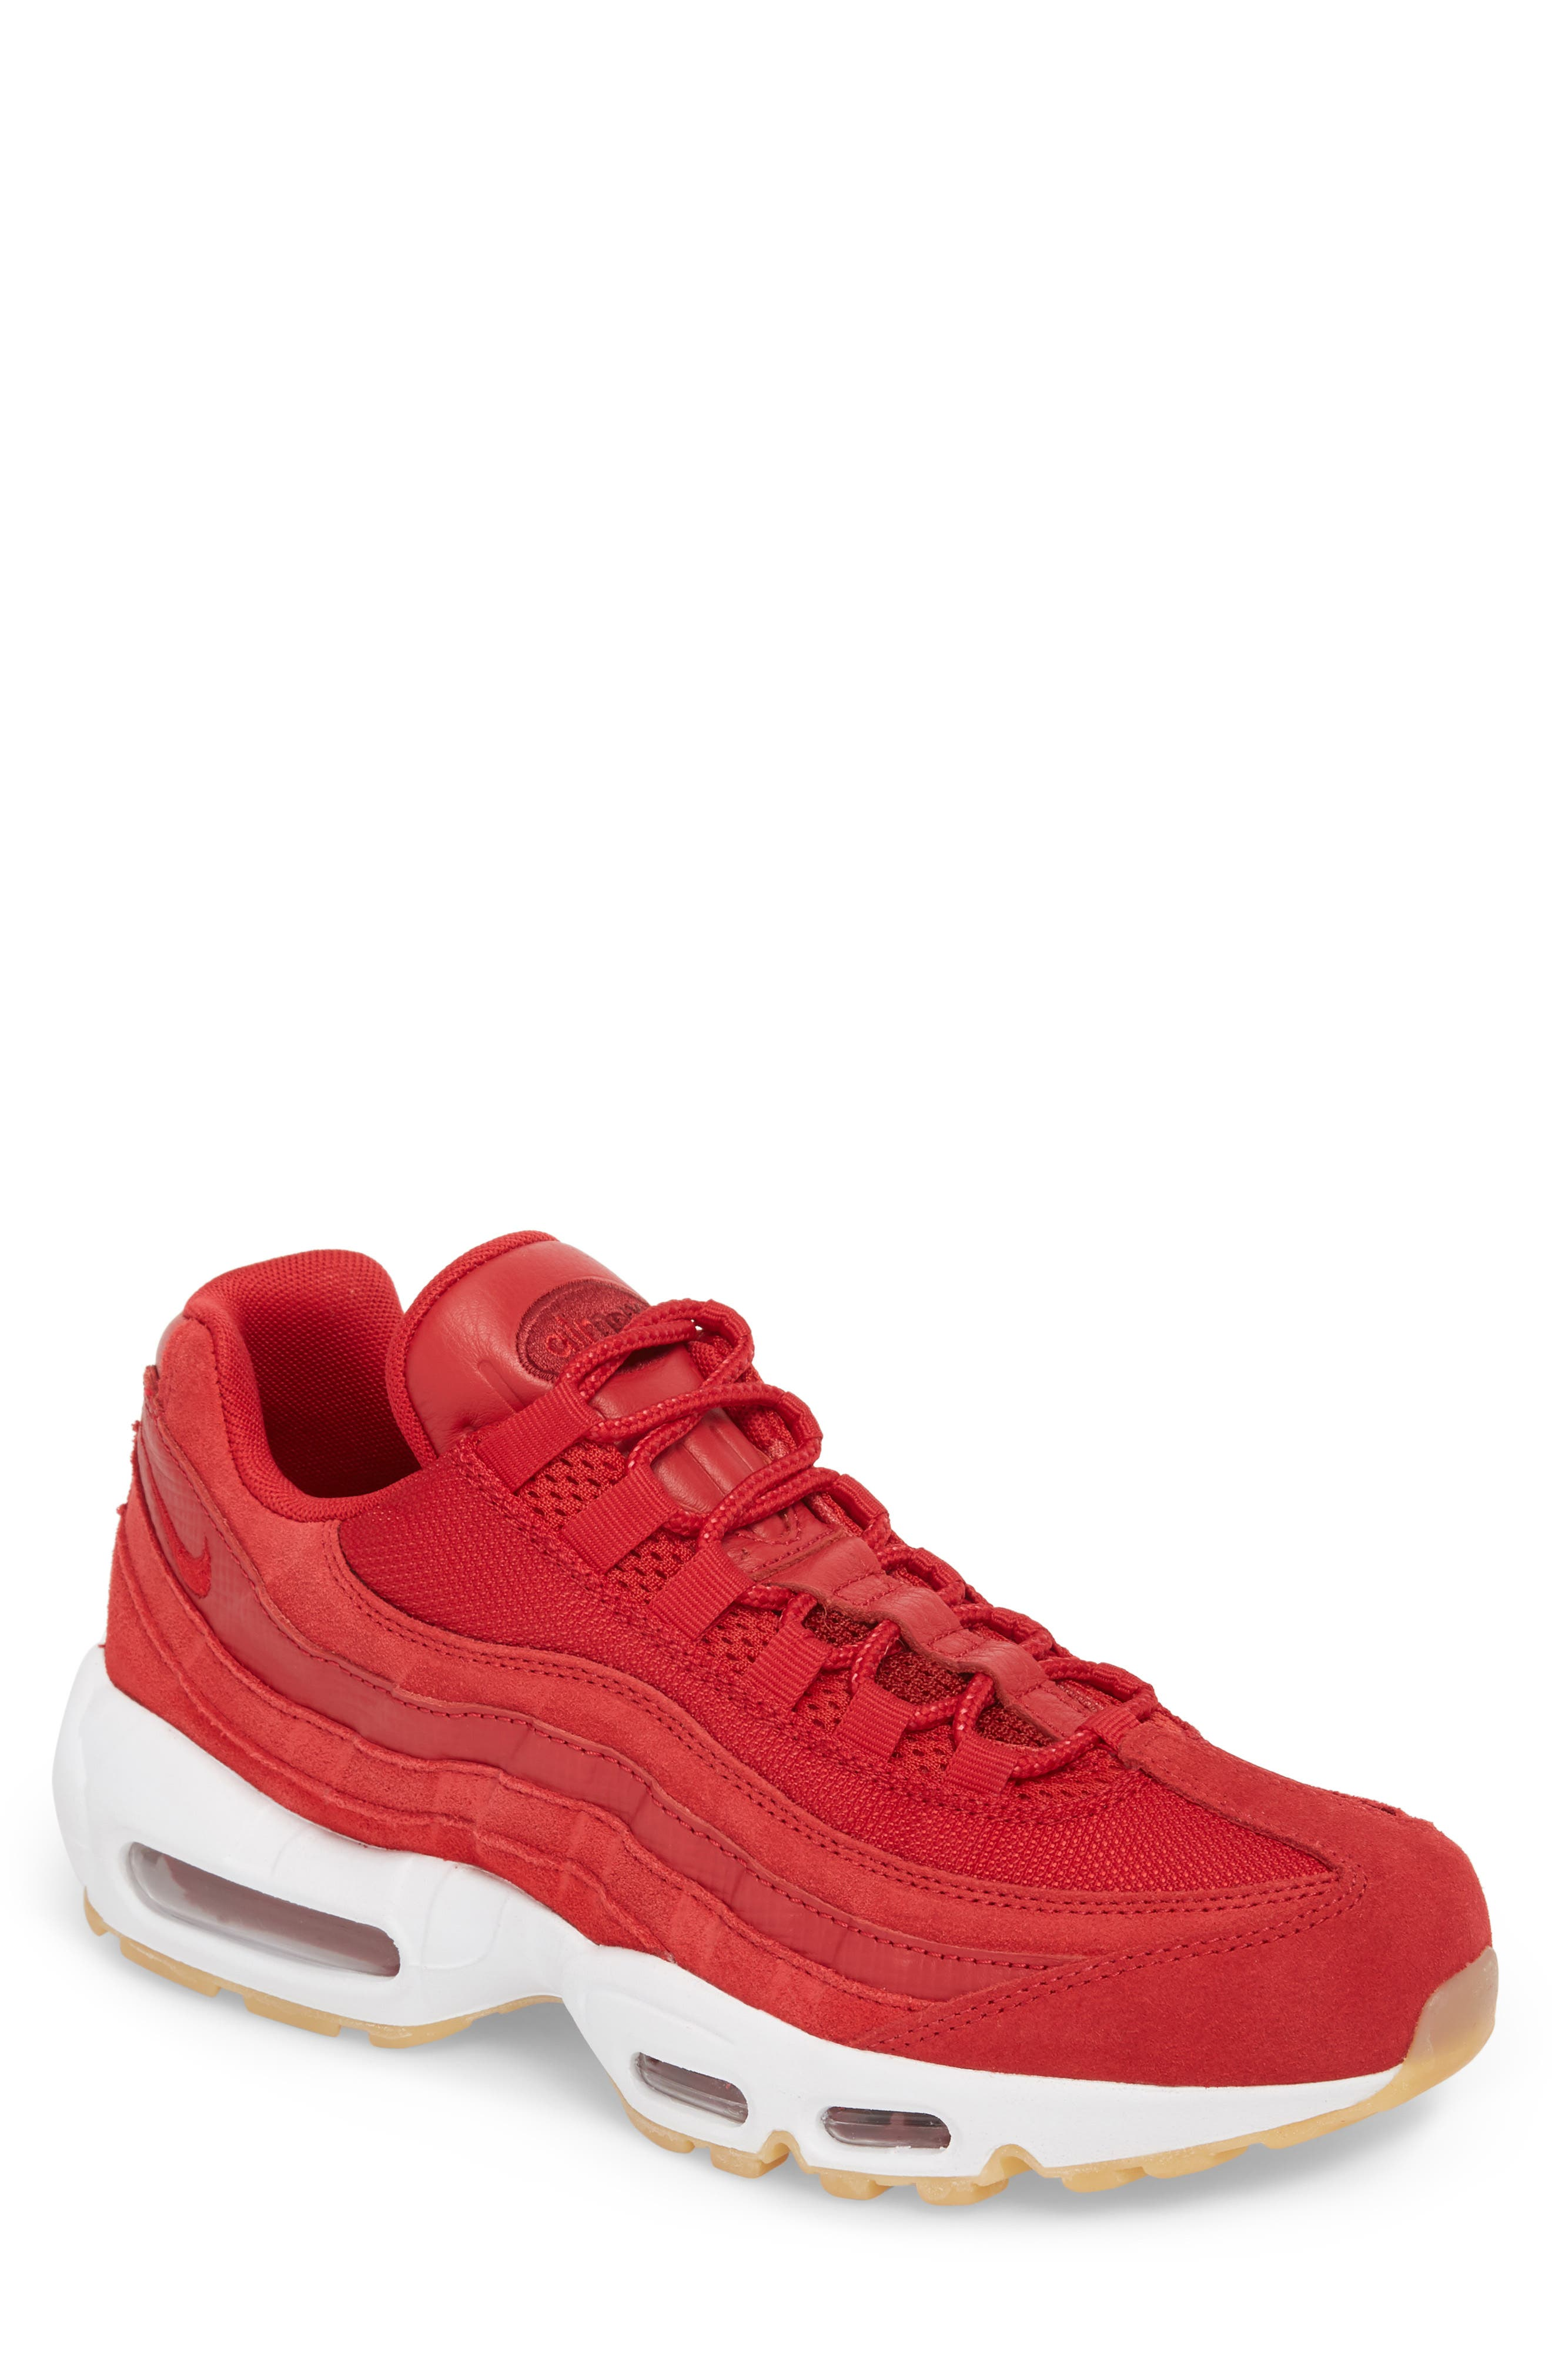 Air Max 95 Sneaker,                             Main thumbnail 1, color,                             GYM RED/ TEAM RED/ WHITE